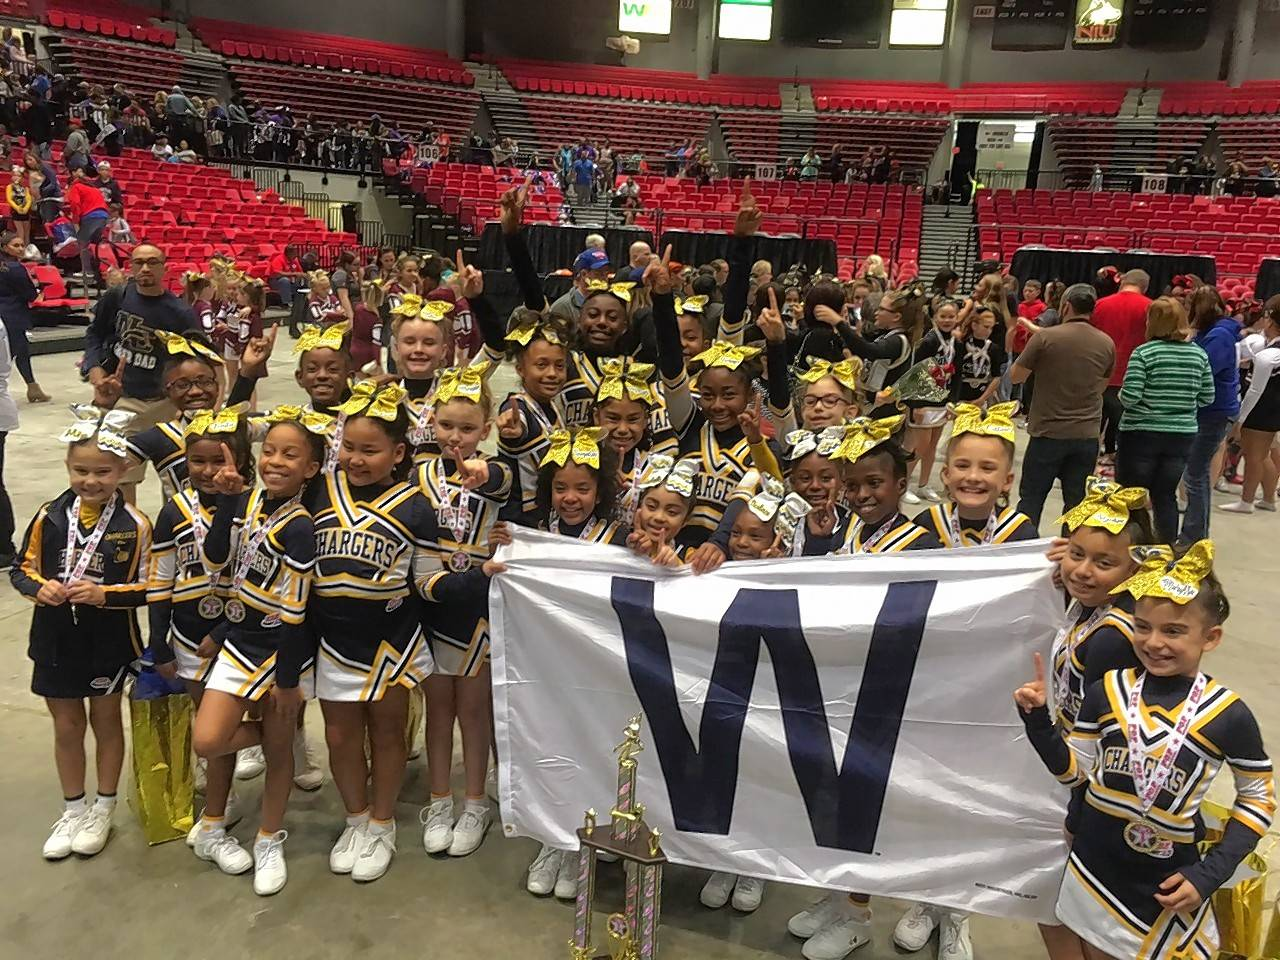 Members of the Naperville Chargers cheerleading teams at the Tiny Mite level for ages 5 to 7 and the Junior Pee Wee level for ages 8 to 11 celebrate the Regional championship victory of the older team during a competition Nov. 6 at Northern Illinois University. The Junior Pee Wee team is competing this week in the Pop Warner Cheer and Dance National Championships in Florida.